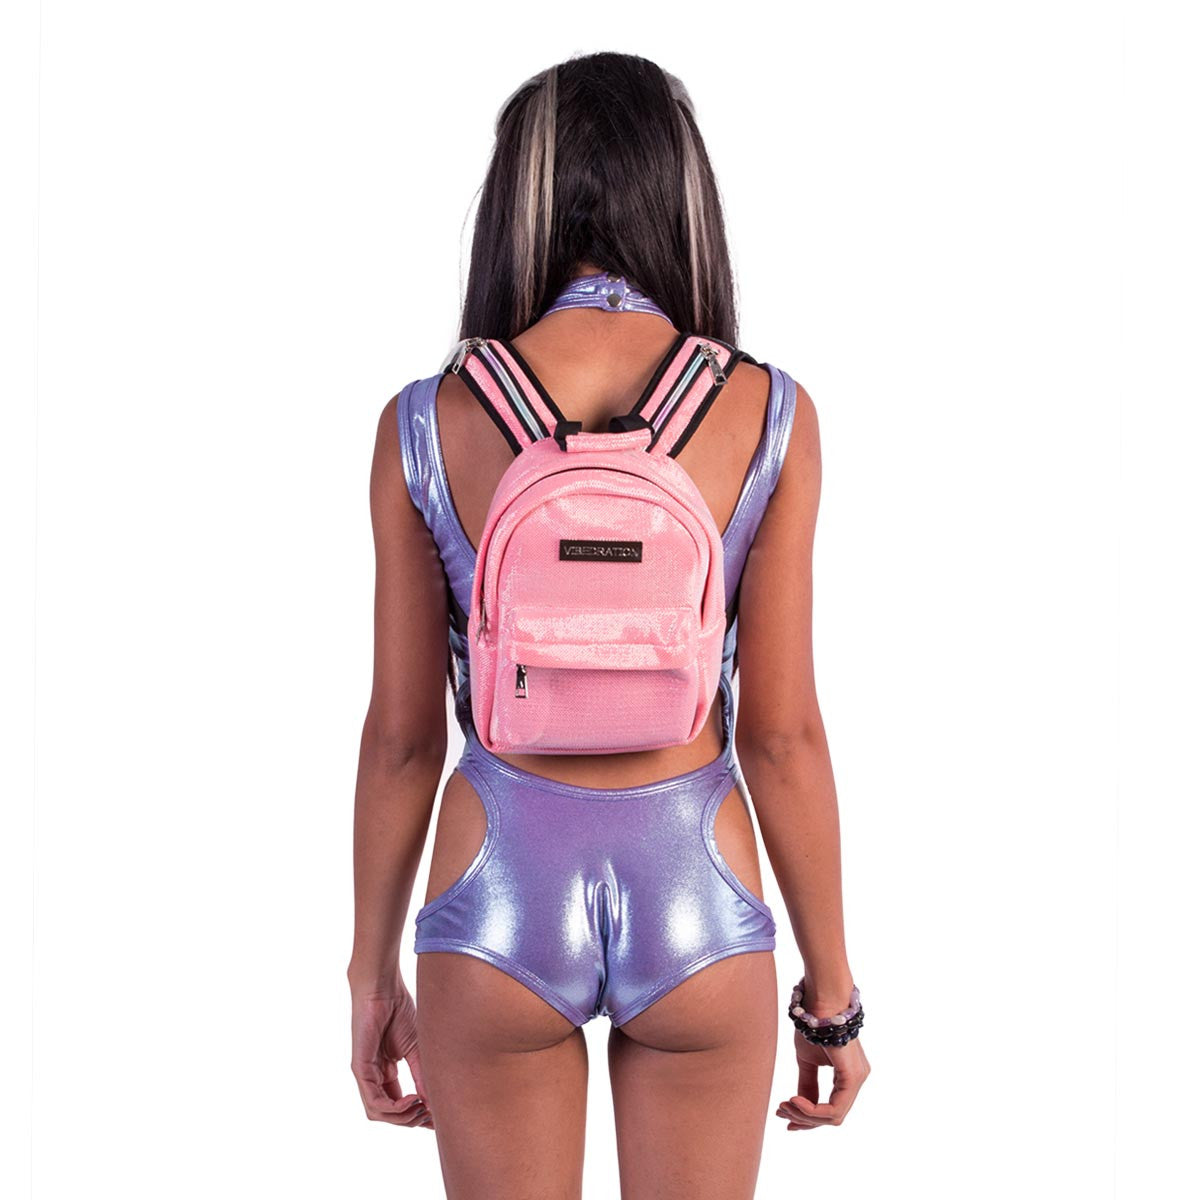 Female wearing small Glitter Pink hydration pack